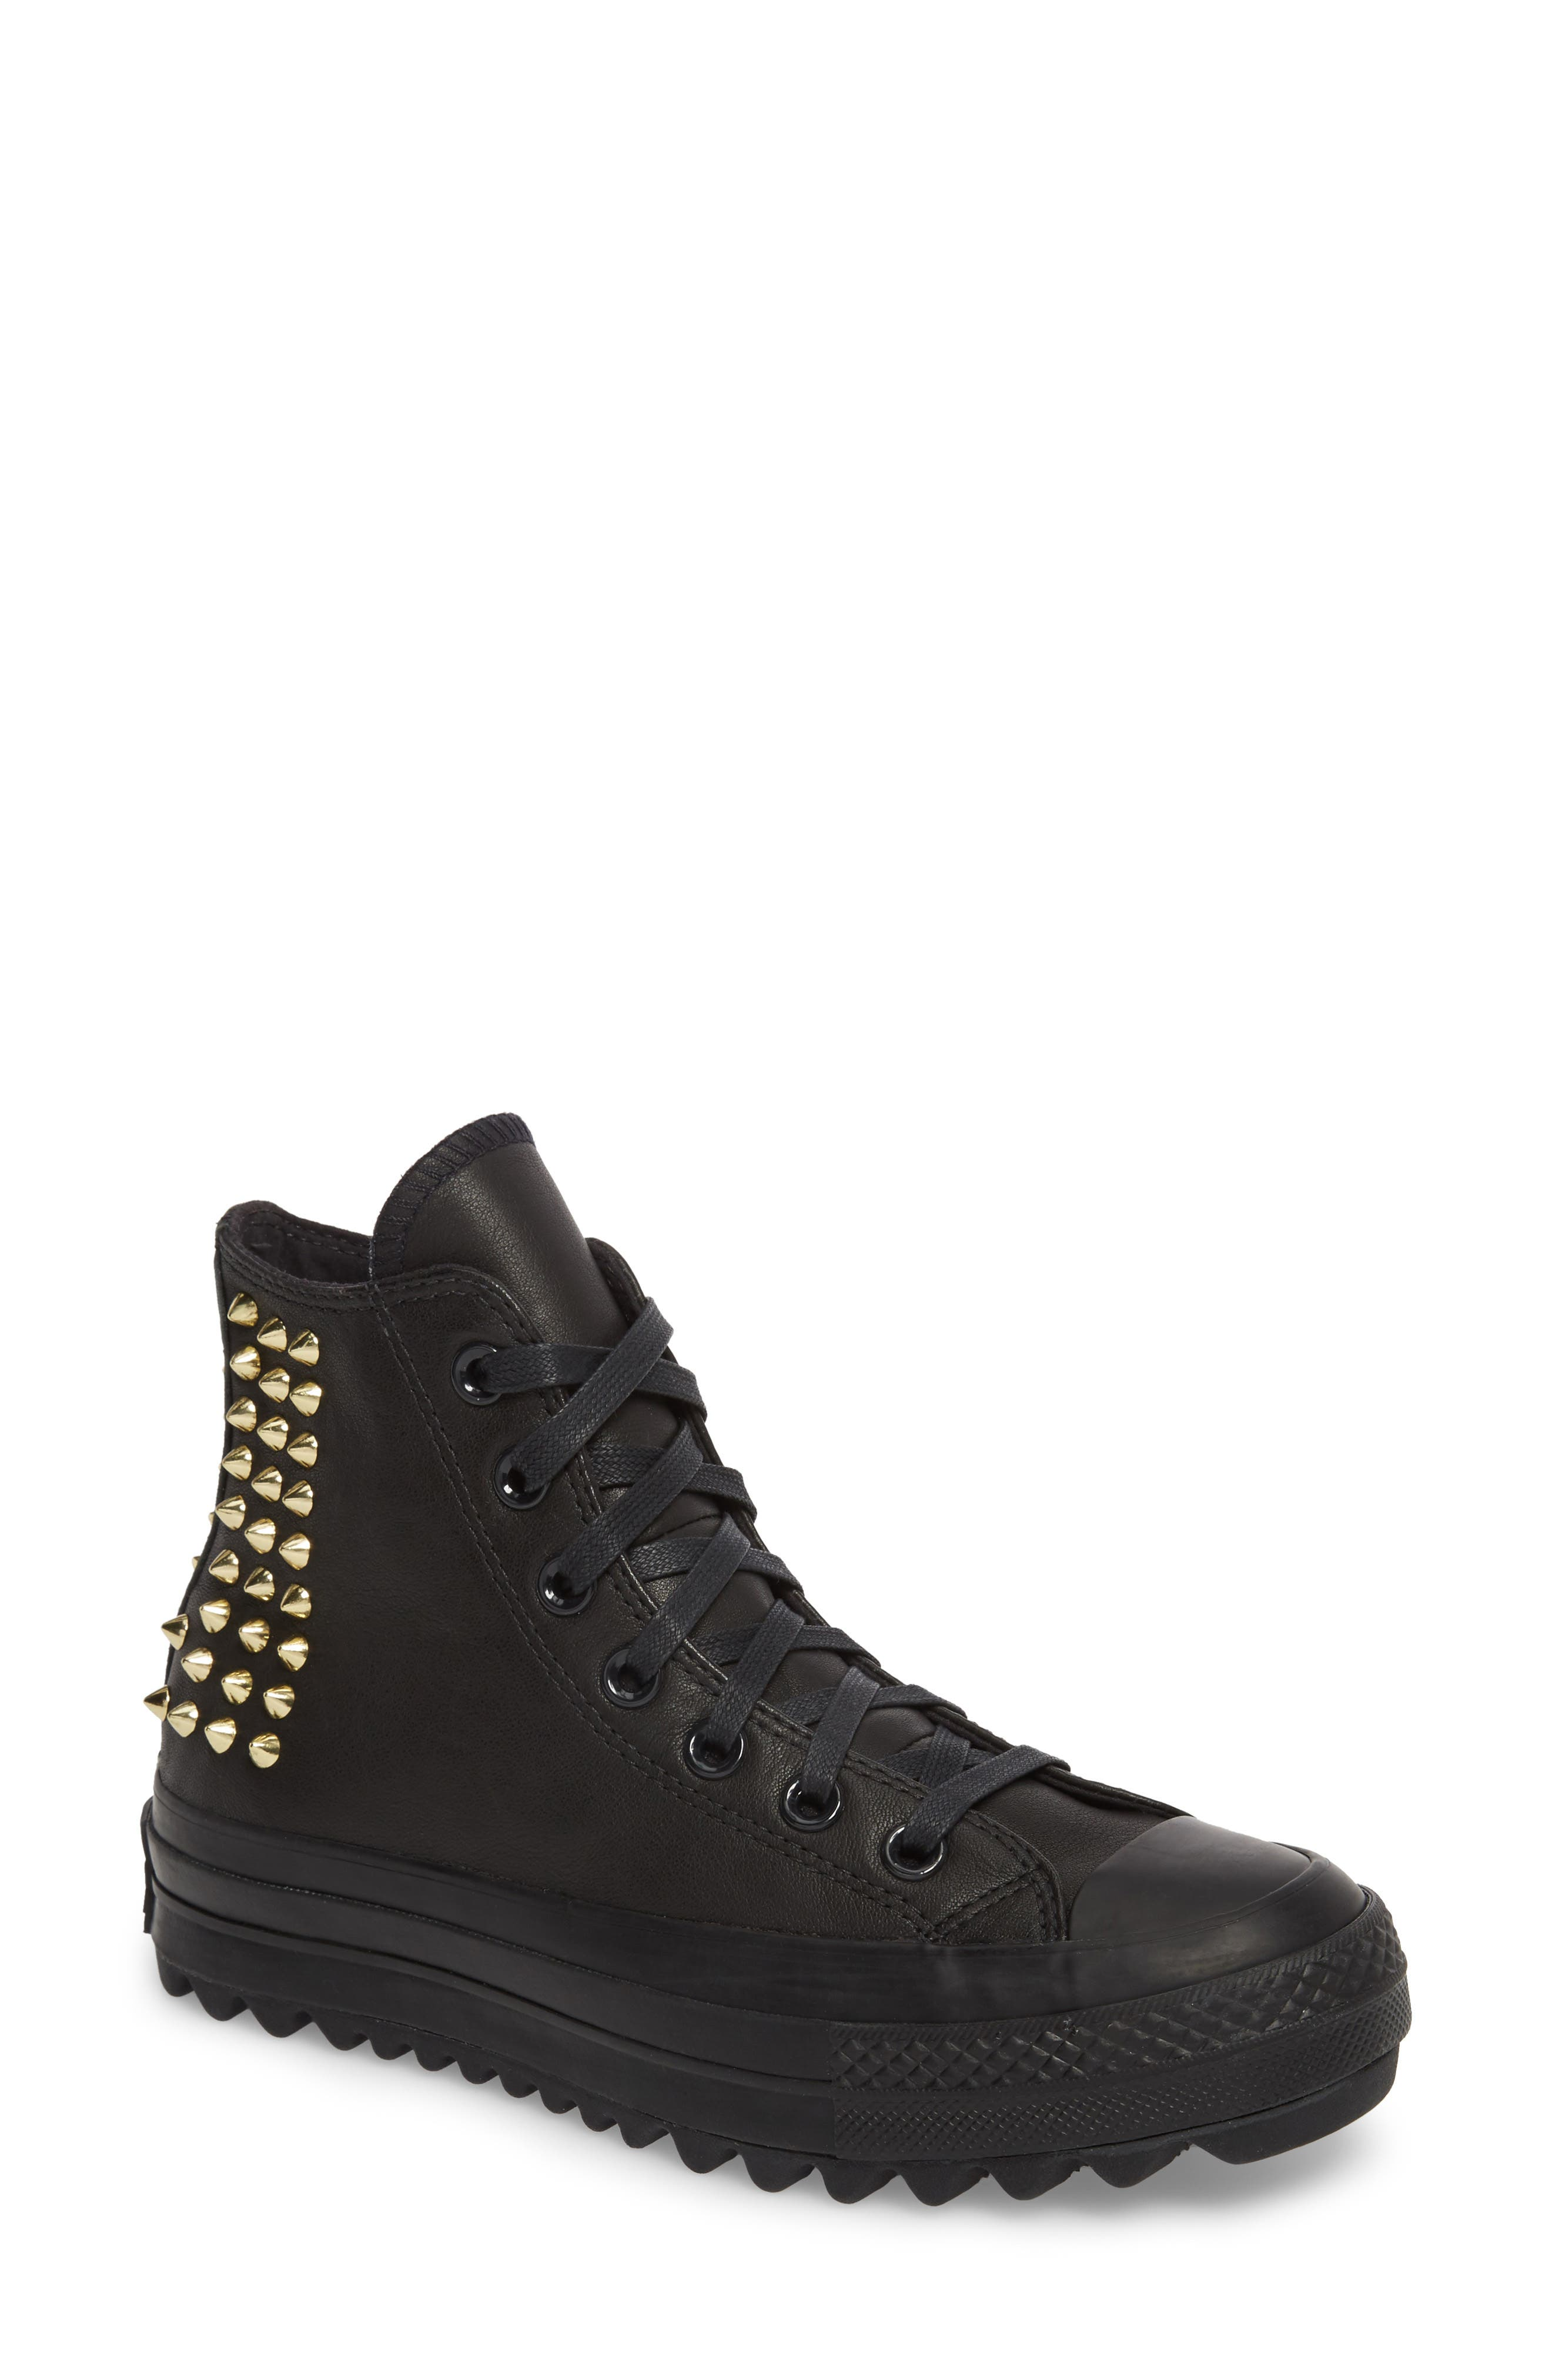 Chuck Taylor<sup>®</sup> All Star<sup>®</sup> Lift Ripple Studded High Top Sneaker,                         Main,                         color, 001